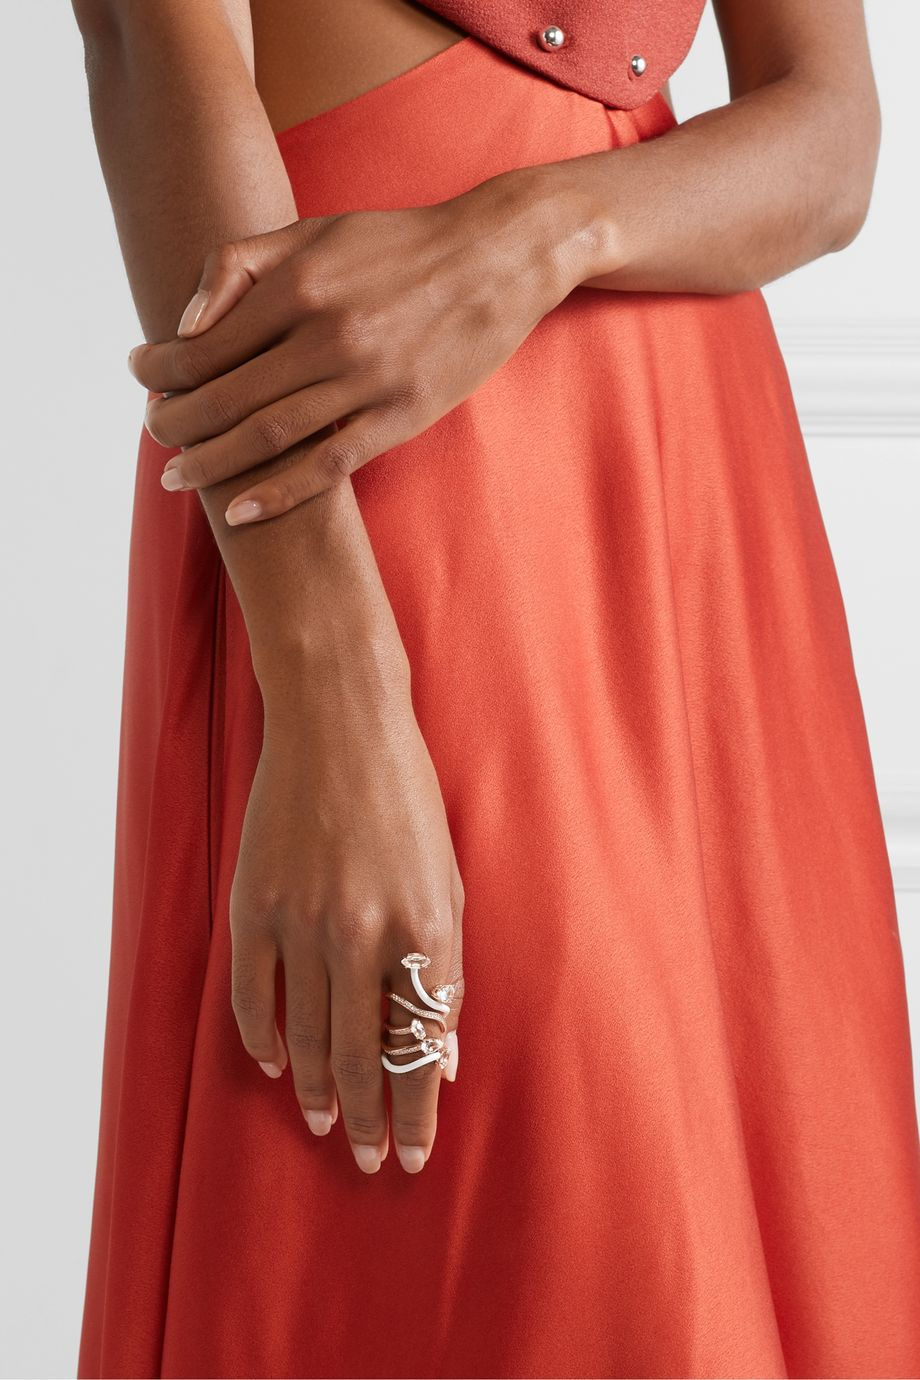 Bea Bongiasca You're So Vine 9-karat rose gold, enamel, rock crystal and diamond ring